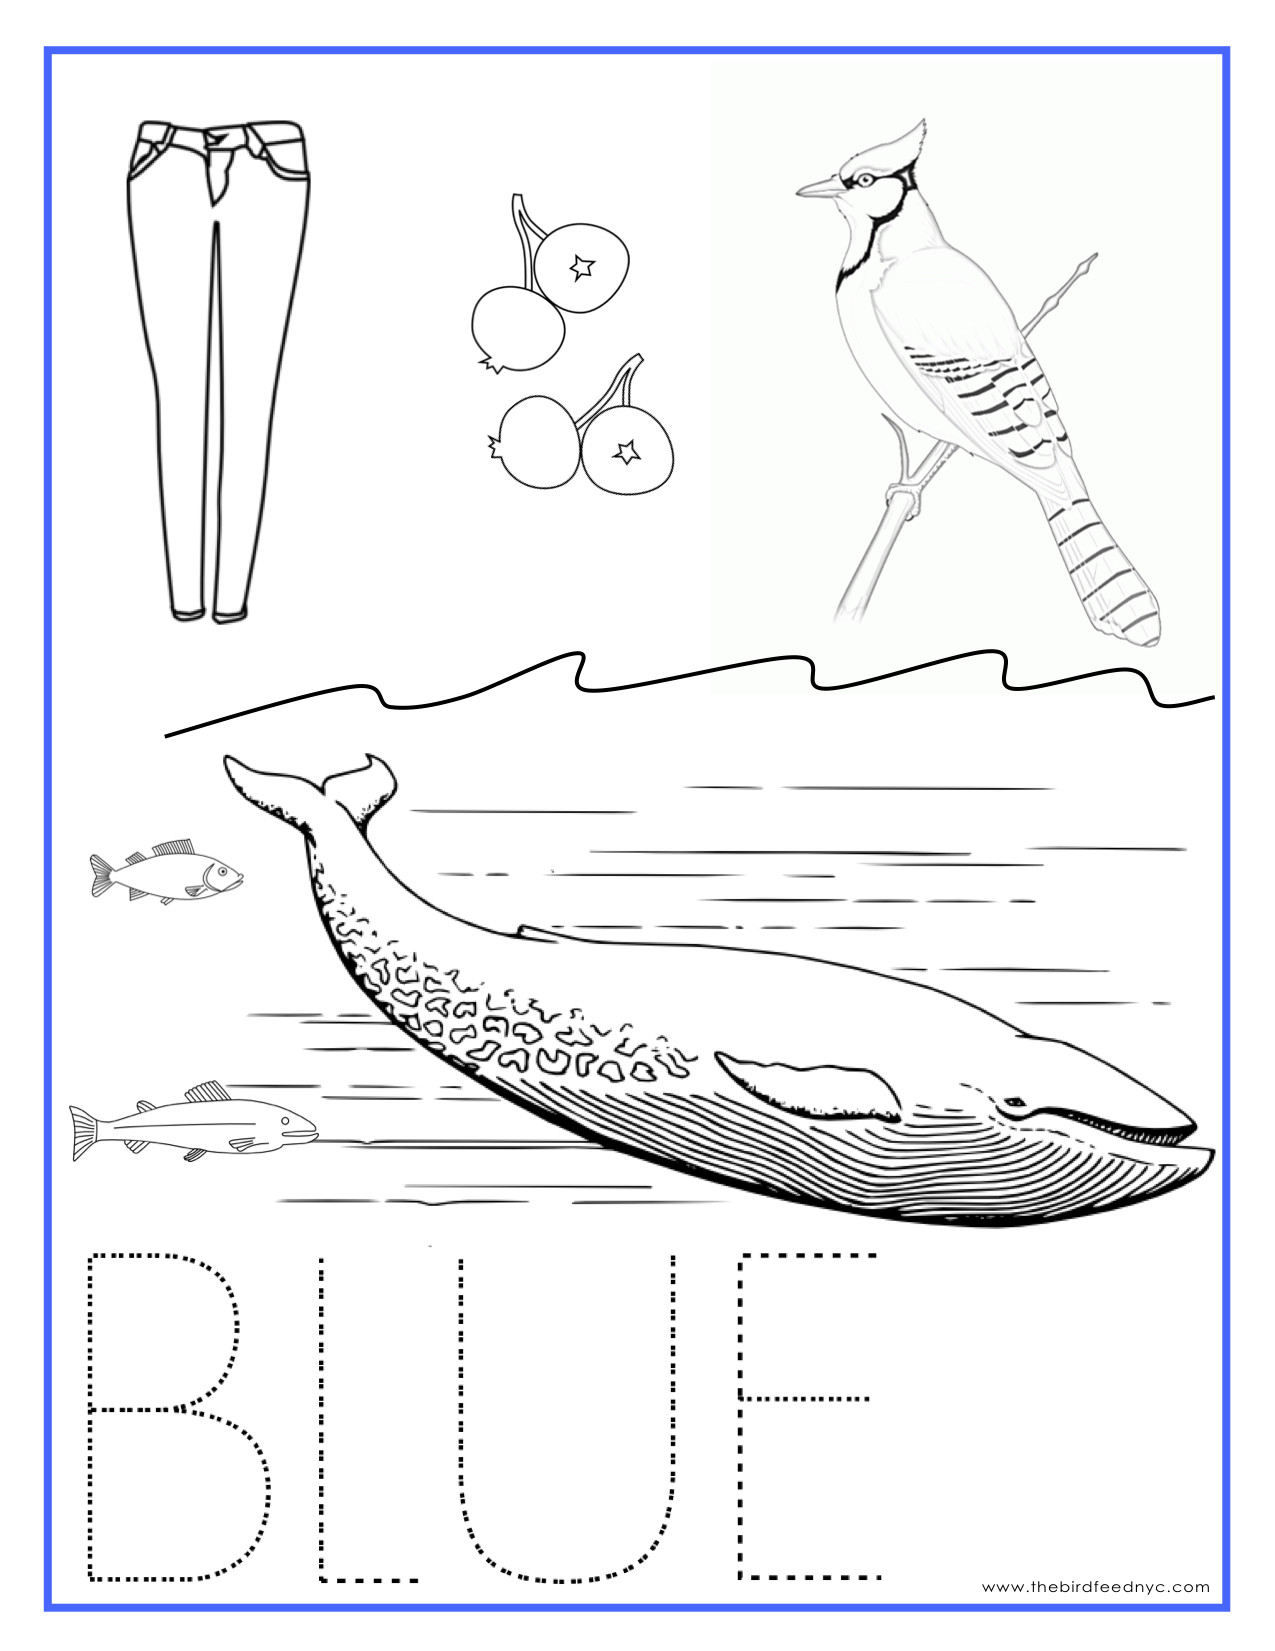 Best ideas about Free Printable Coloring Sheets For Preschoolers On The Color Blue . Save or Pin Printable Coloring Sheets Now.